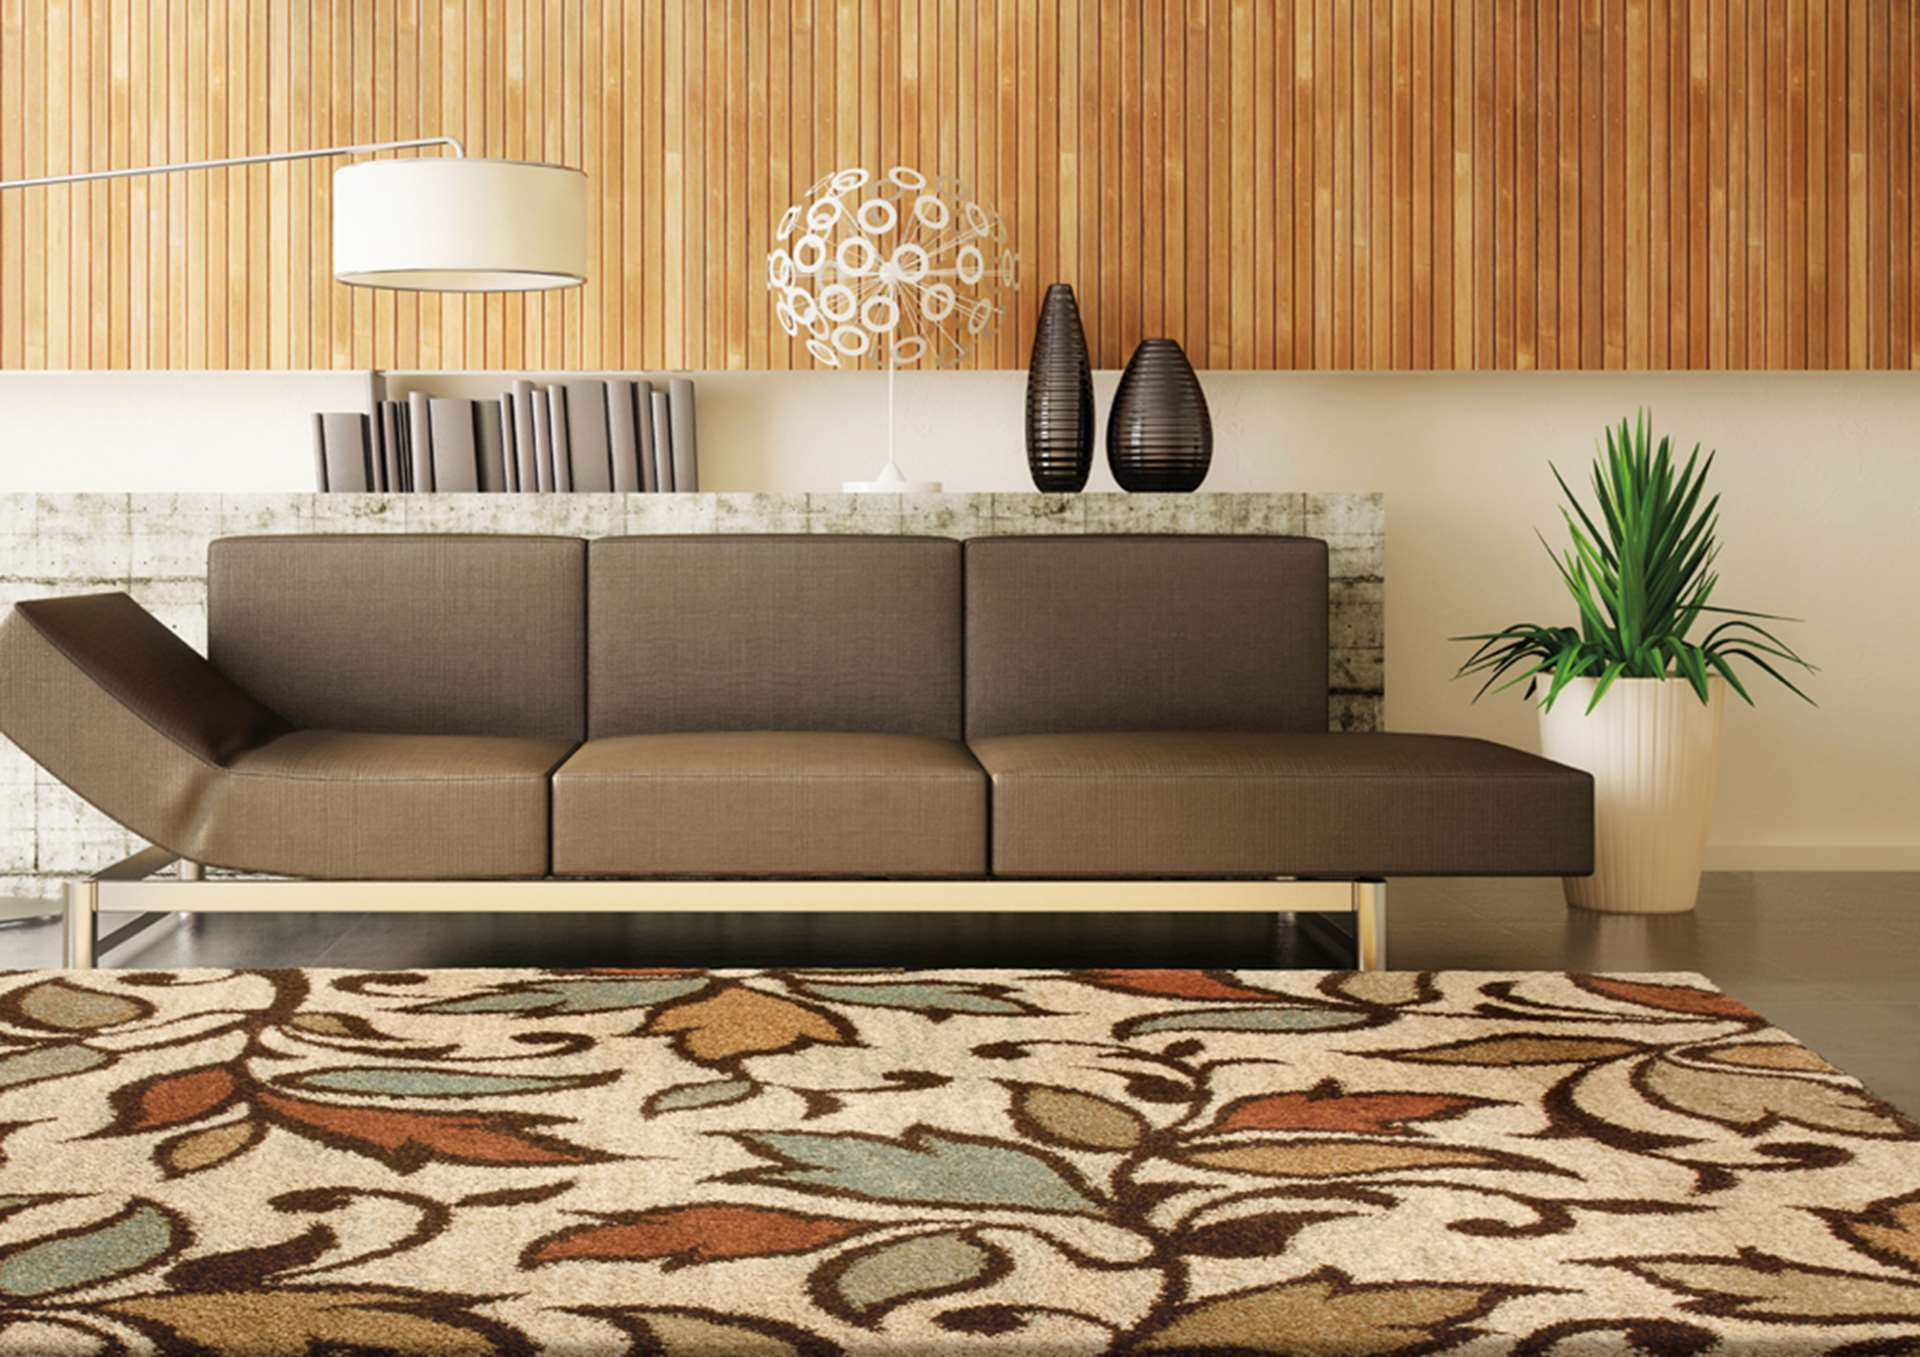 chic orian rugs plus tan sofa plus floor standing lamp for living room decor ideas